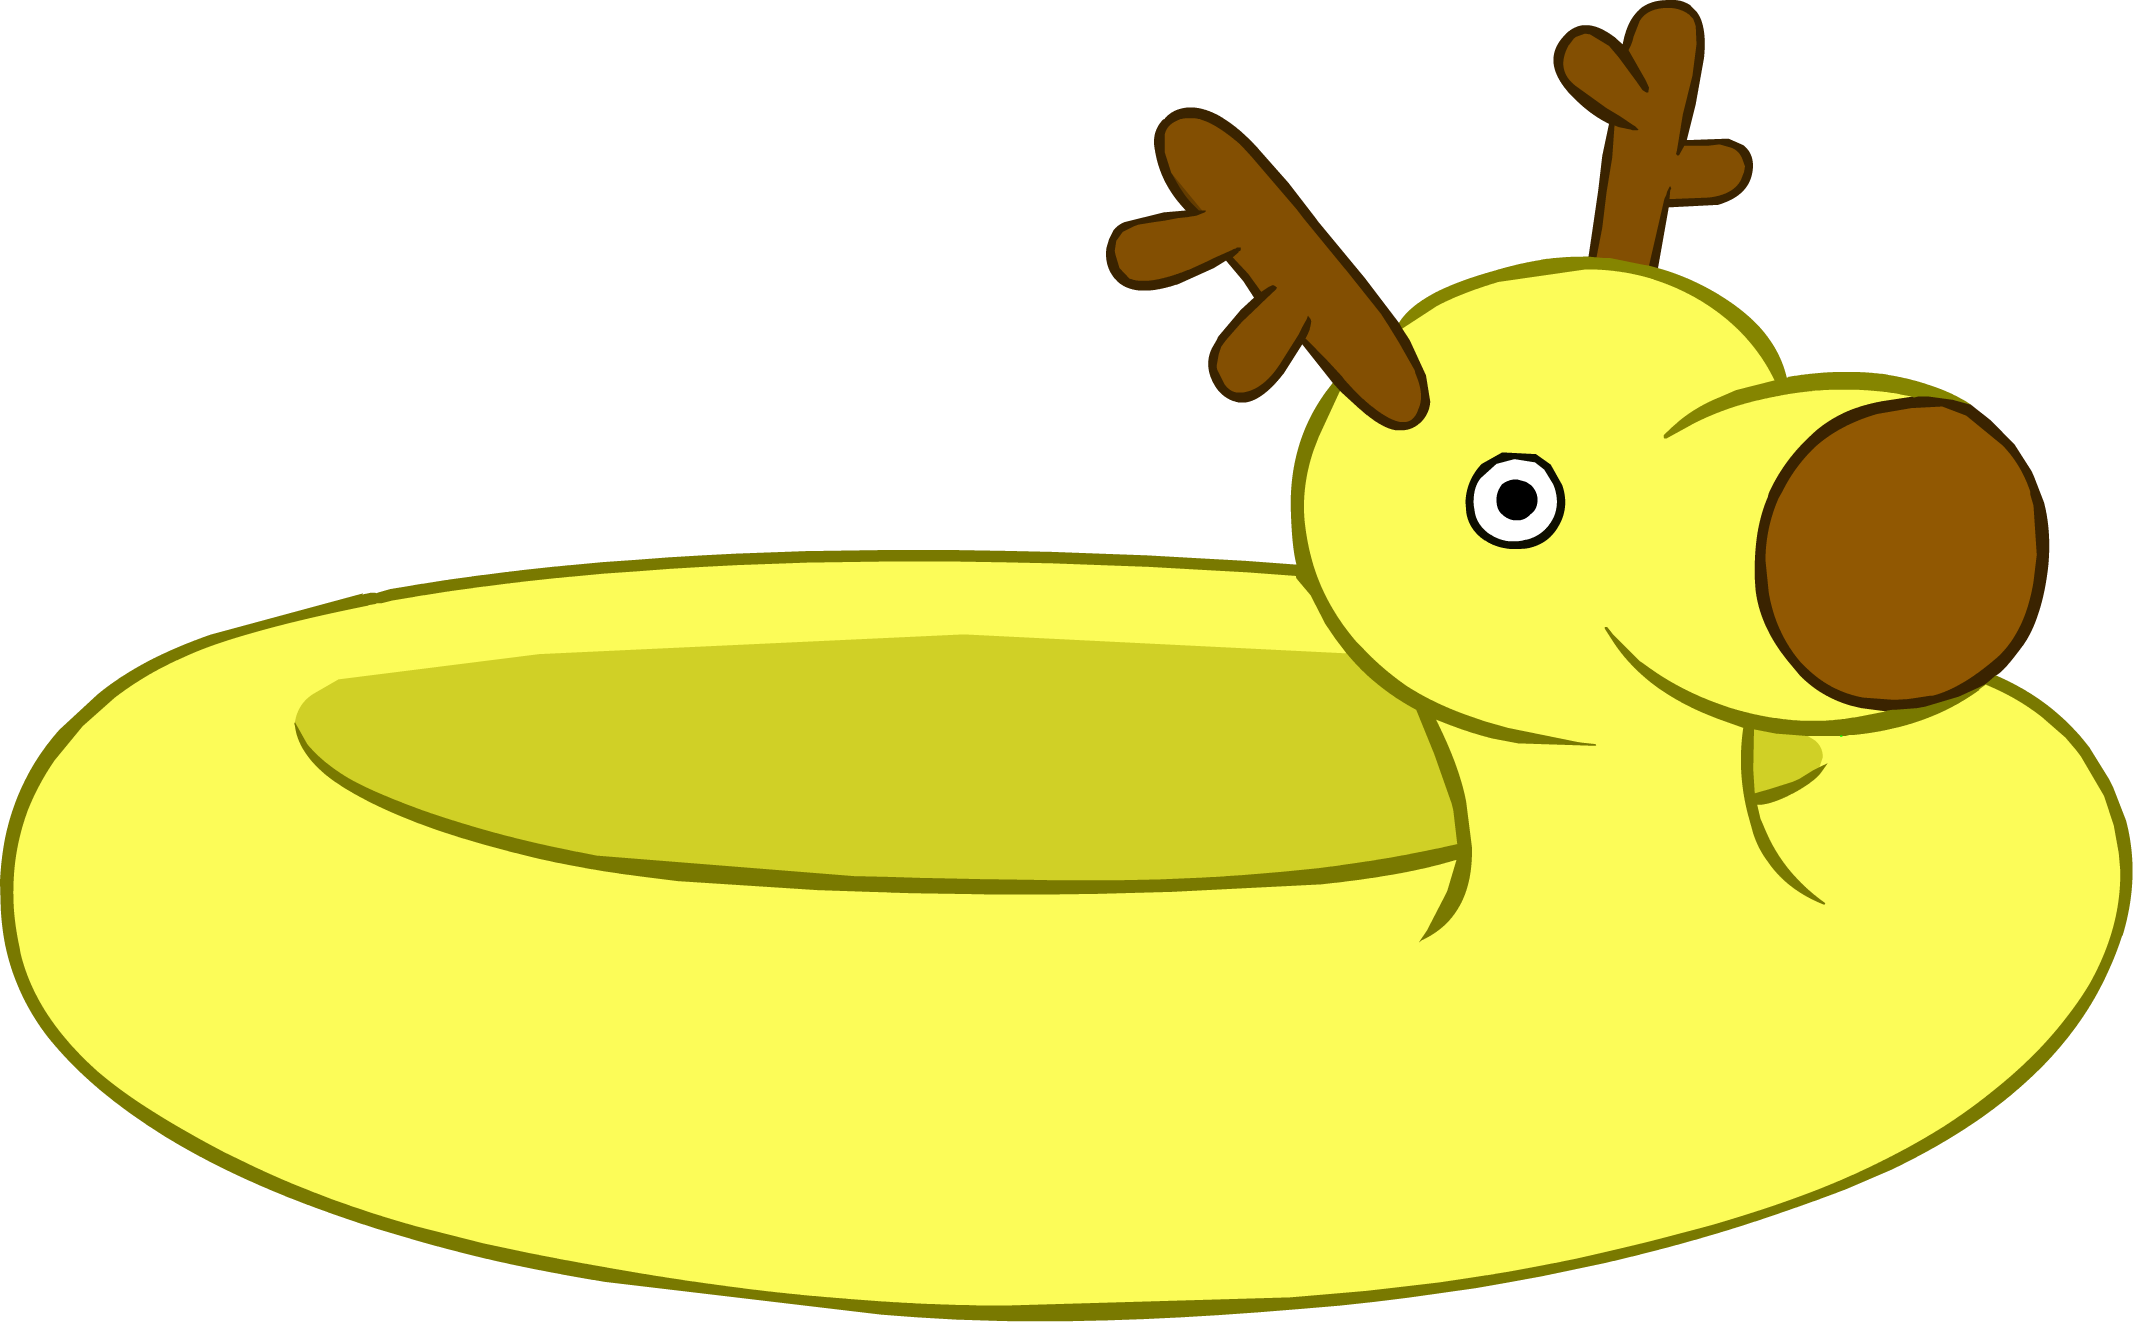 Reindeer club penguin wiki. Swimsuit clipart floaty